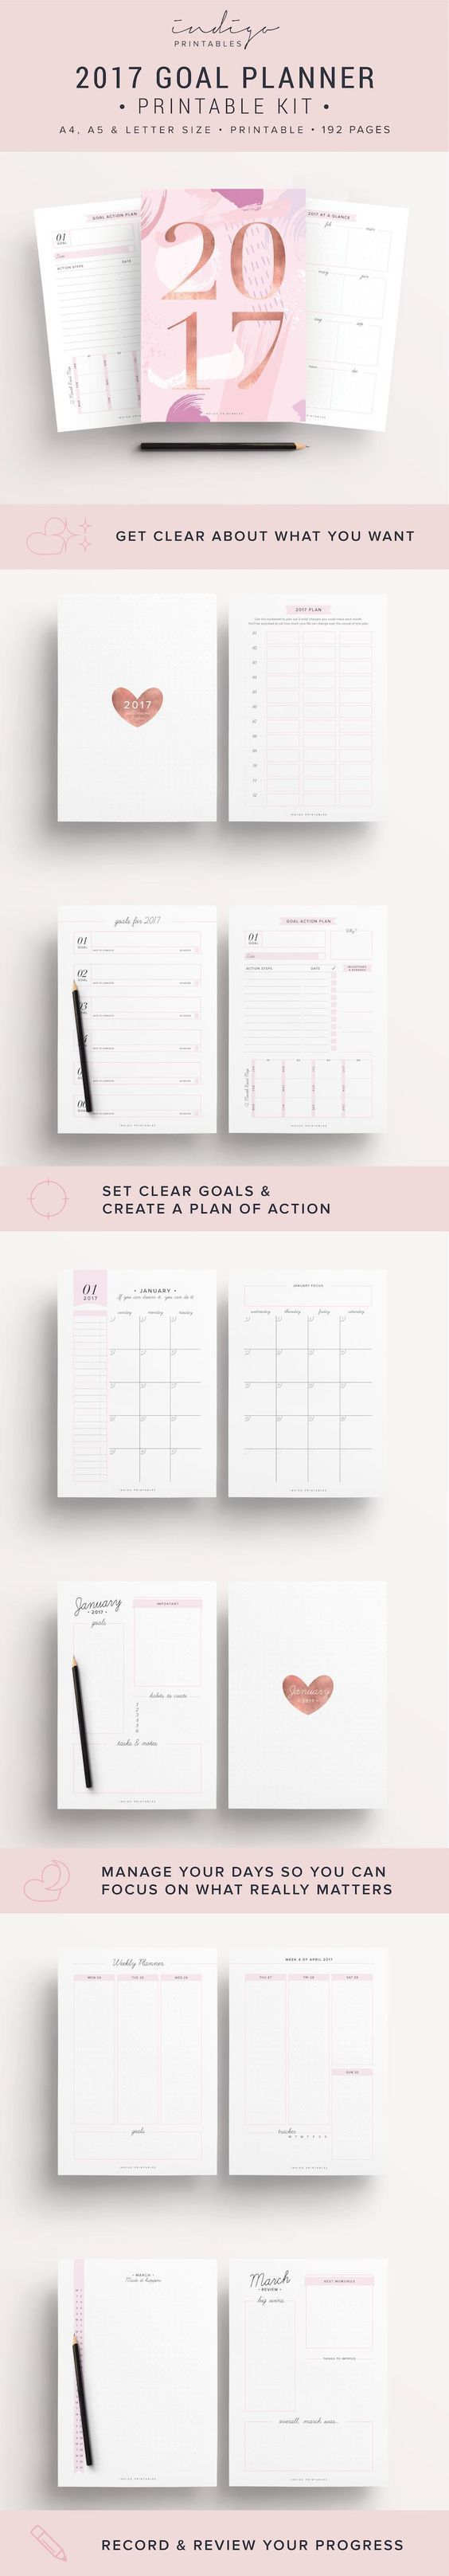 2017 Planner, Goal Planner, Monthly Planner 2017, Weekly Planner 2017, Success Planner, 2017 Inserts, 2017 Printable Planner, 2017 Agenda || 2017 Planner, 192 Printable Pages | Created by #IndigoPrintables